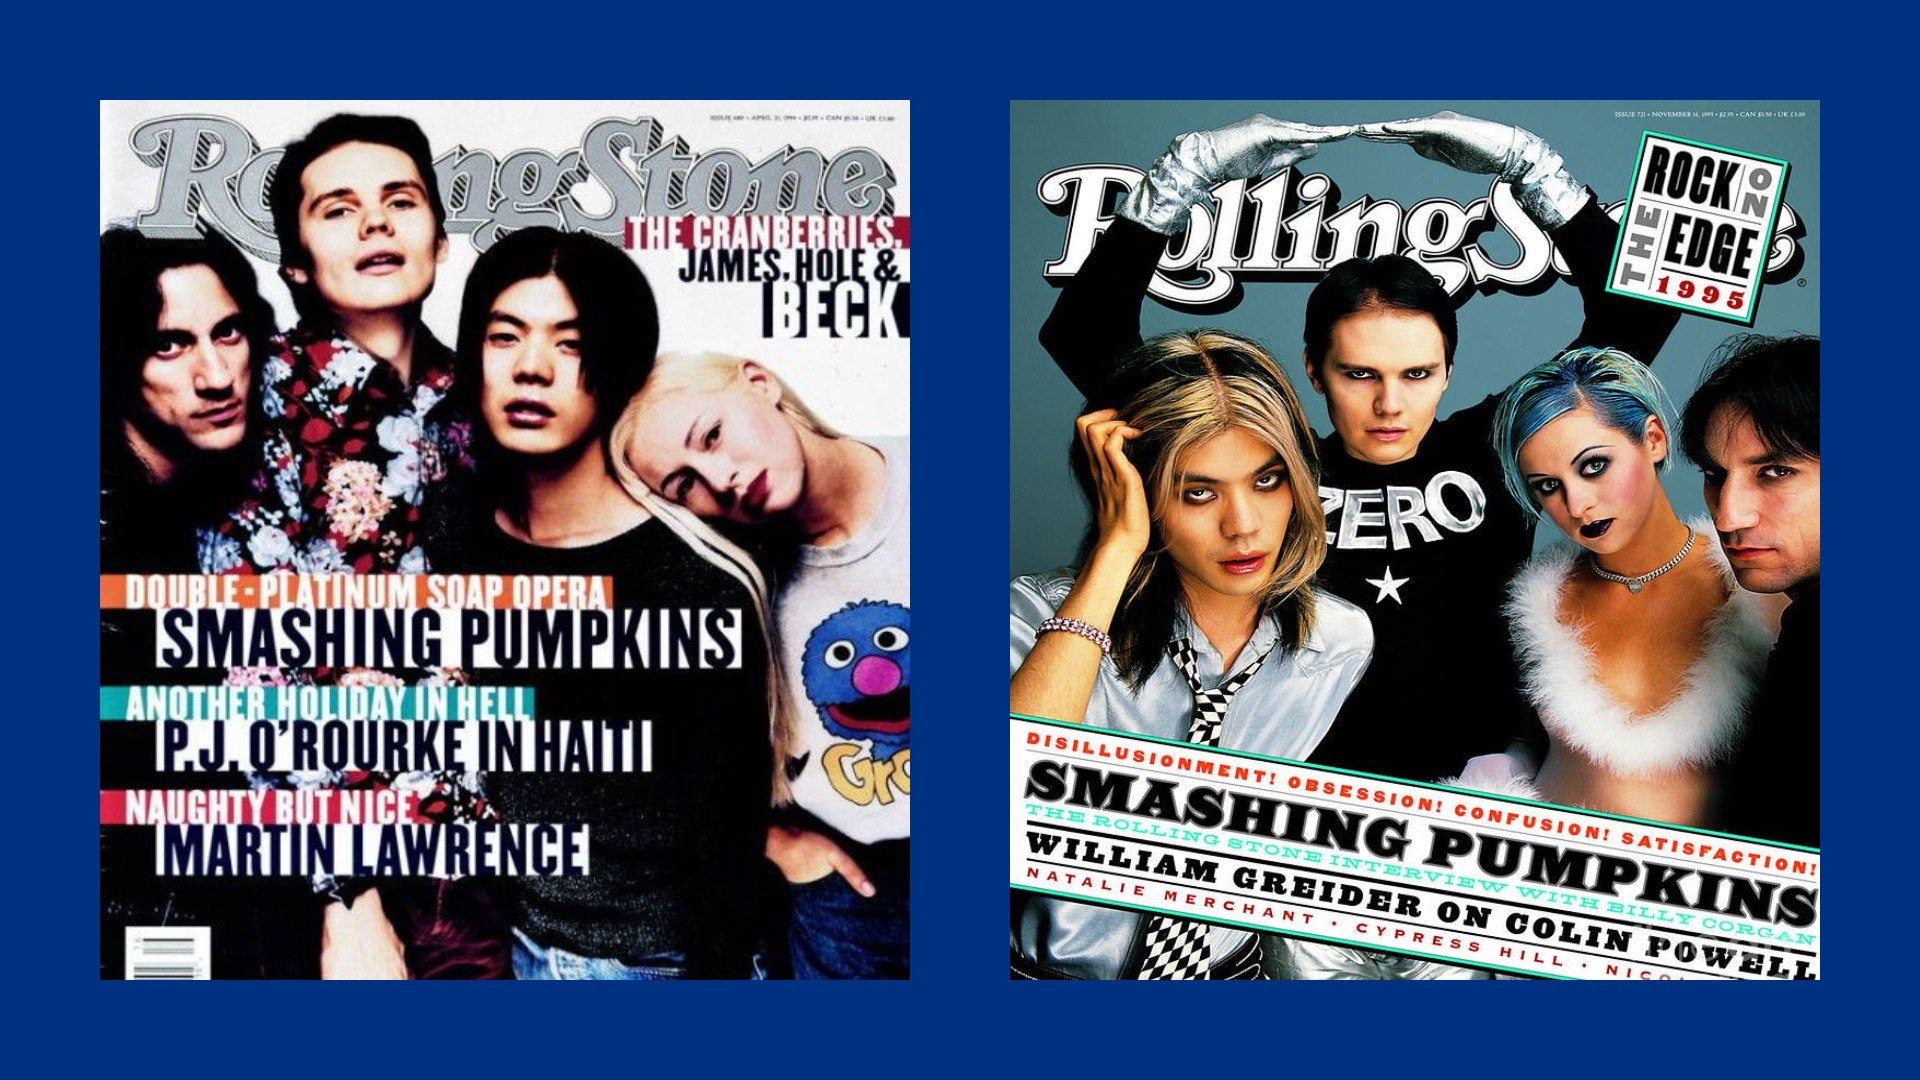 Smashing Pumpkins Rolling Stone covers